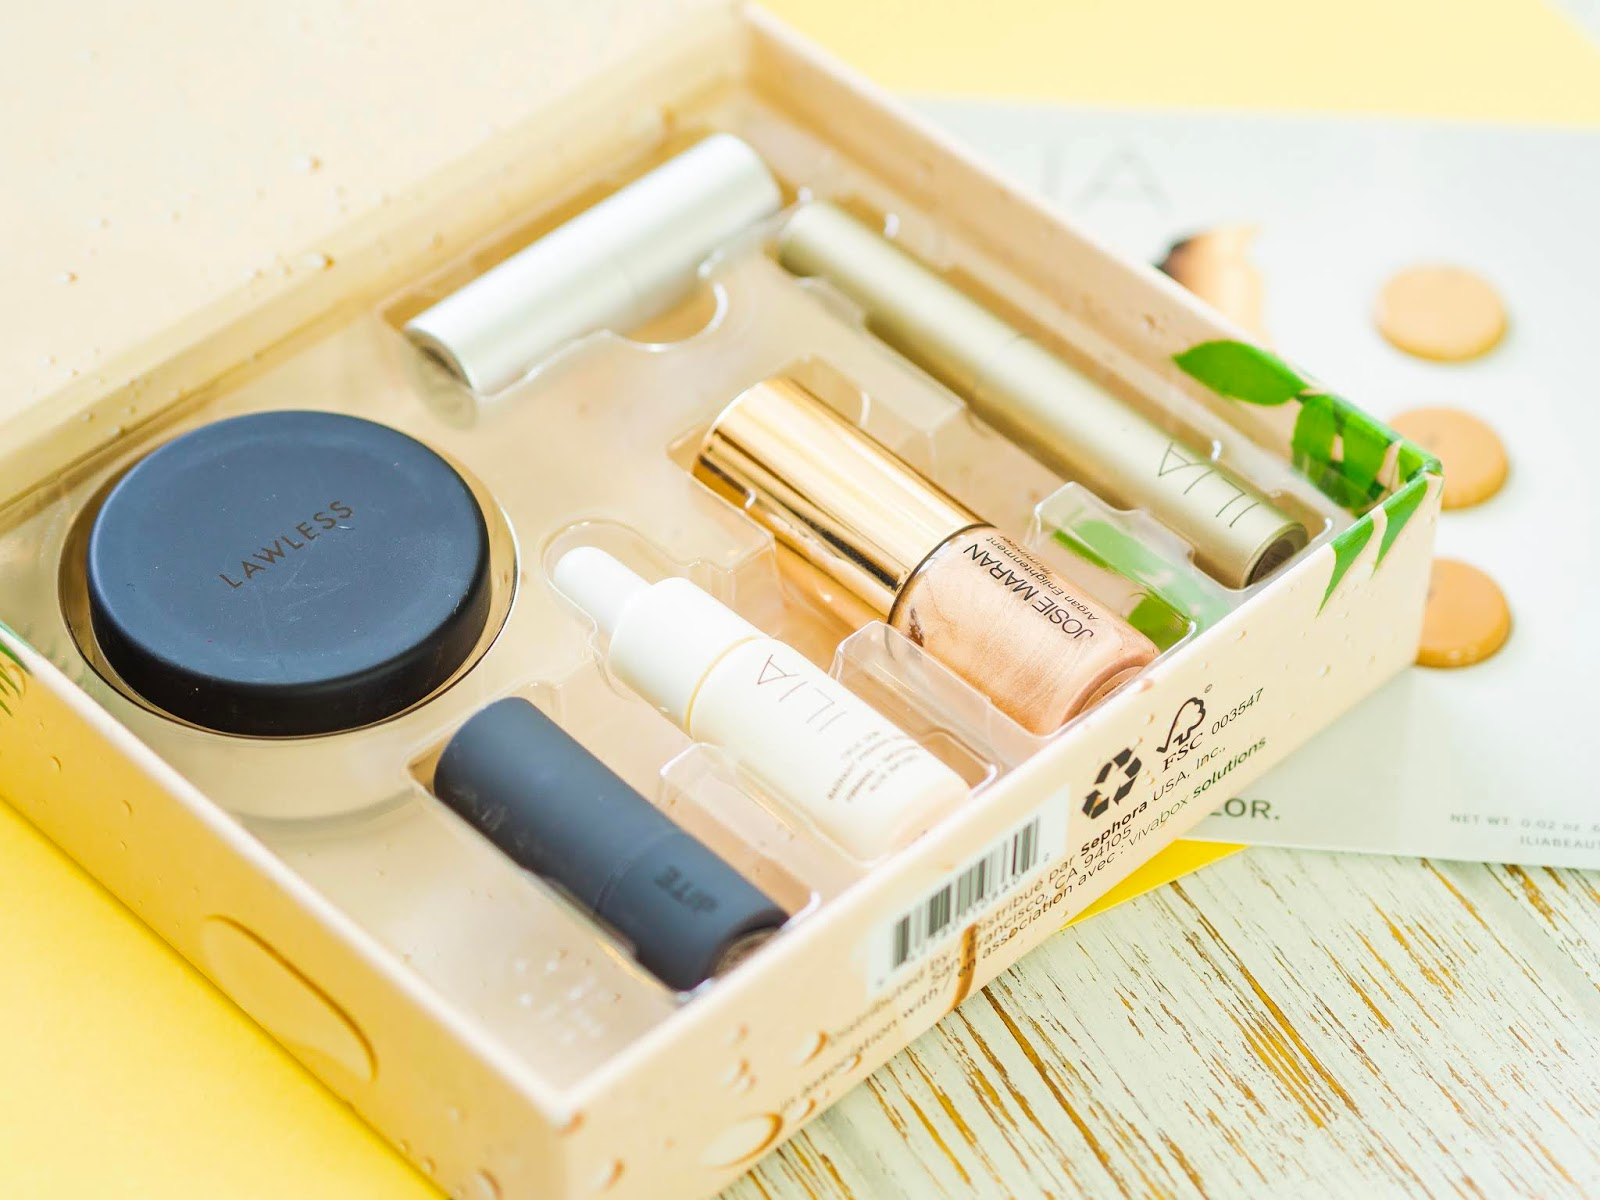 SEPHORA CLEAN BEAUTY KIT REVIEW